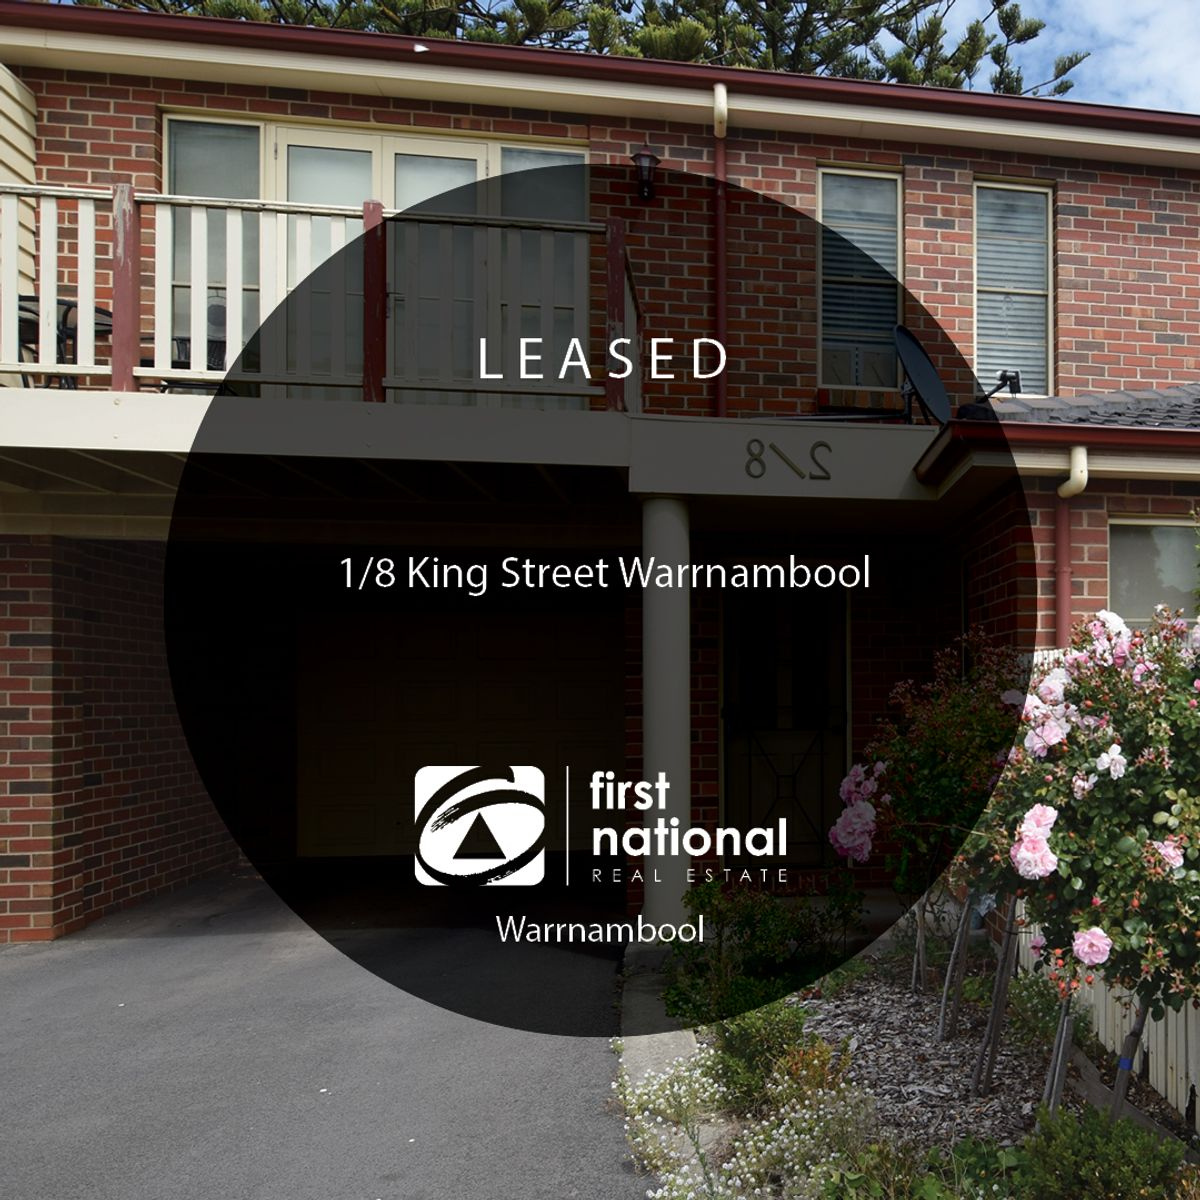 1/8 King Street, Warrnambool, VIC 3280